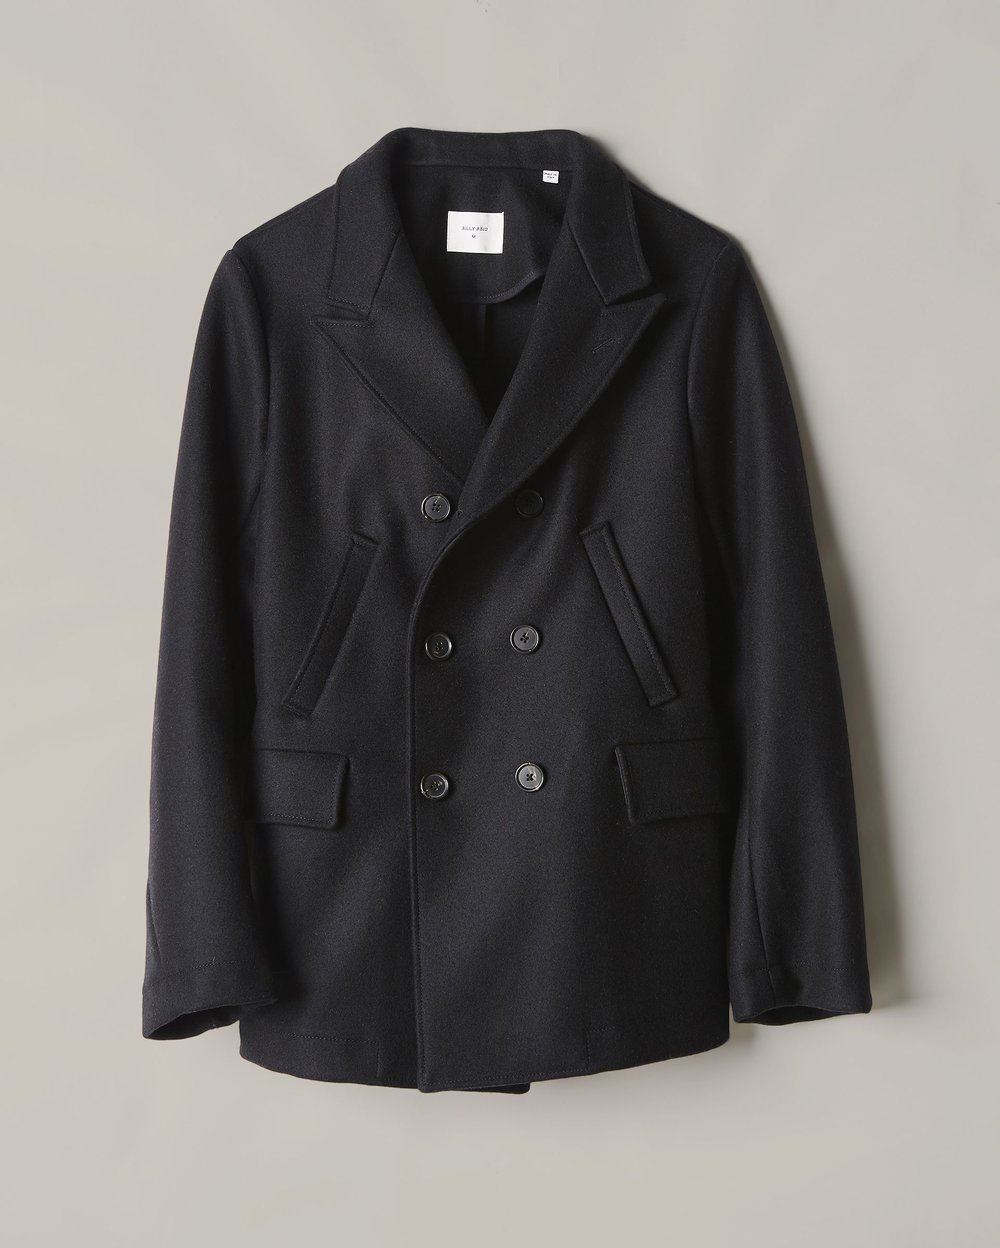 The Bond peacoat from Billy Reid